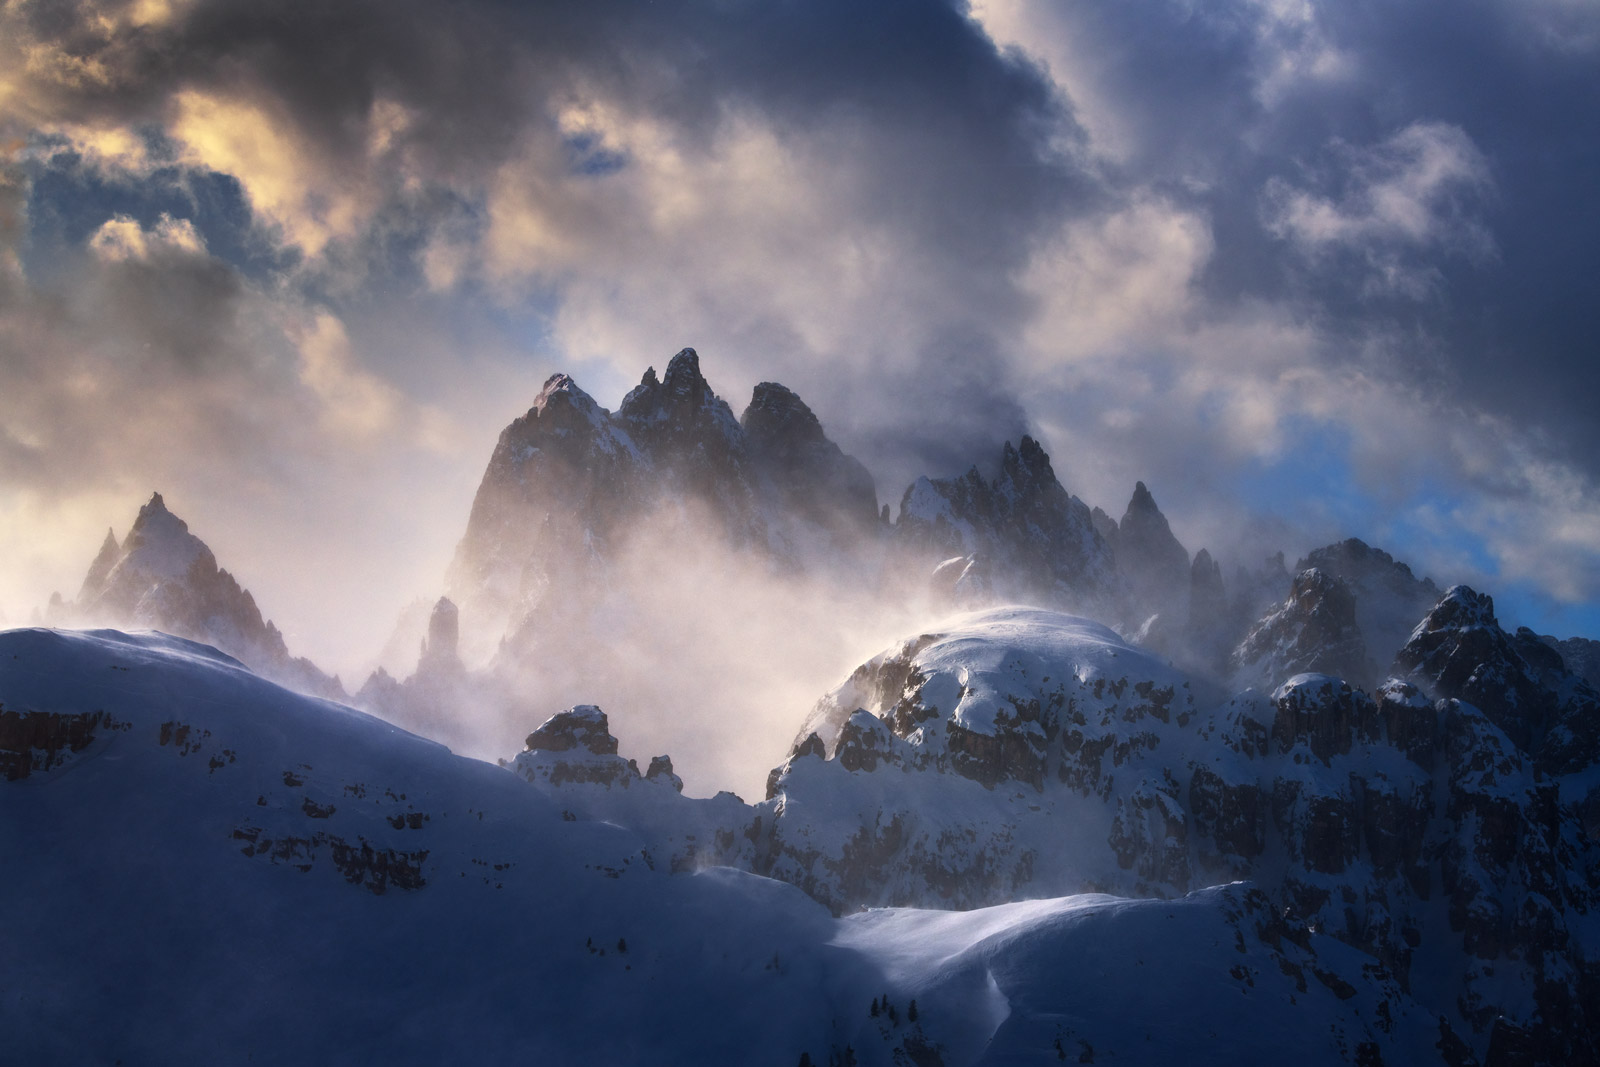 Italy, Dolomites, Mountains, Snowstorm, Winds, Snow, limited edition, photograph, fine art, landscape, photo